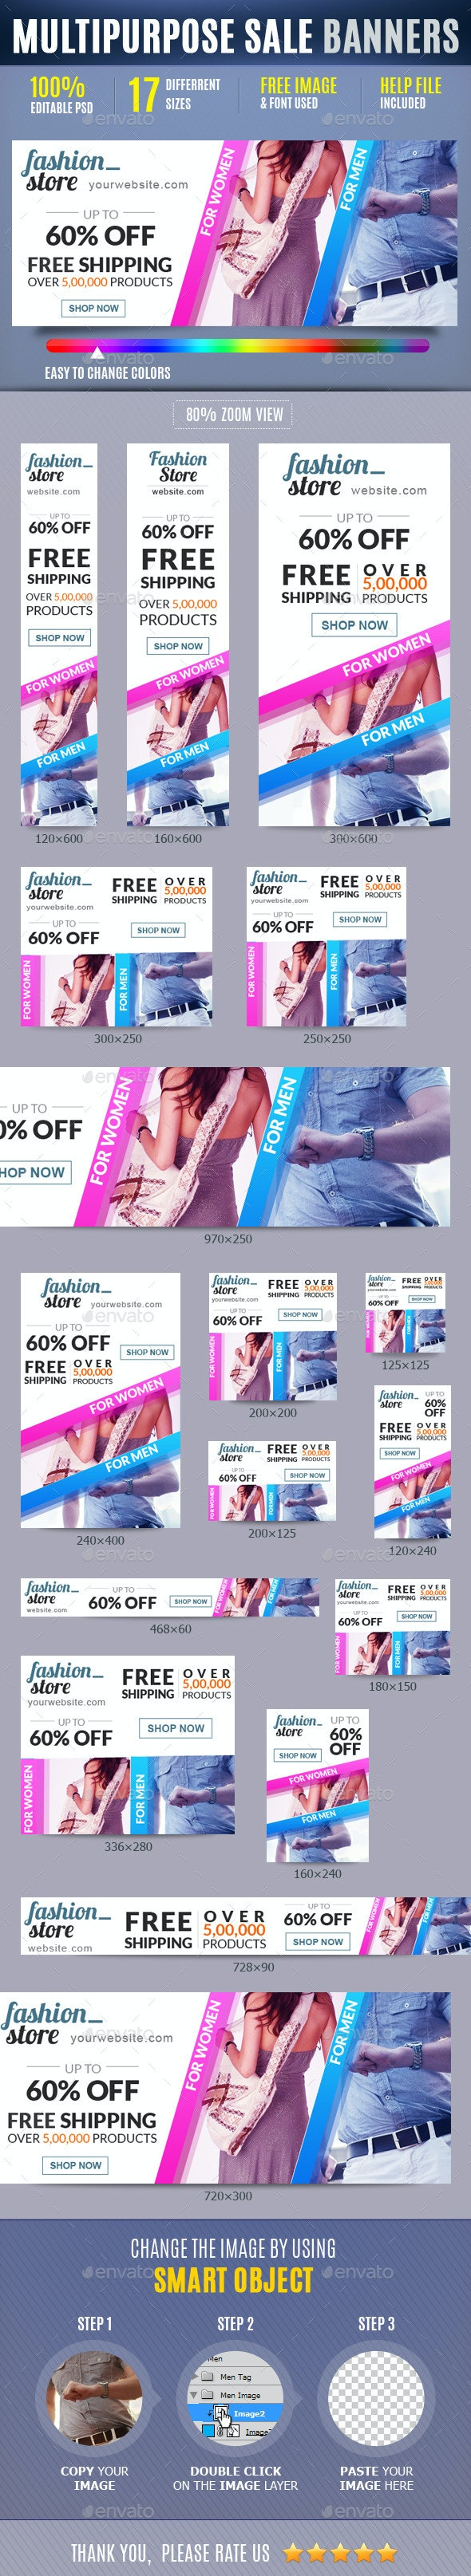 Multipurpose Sales Marketing Ad Banners Vol2 - Banners & Ads Web Elements